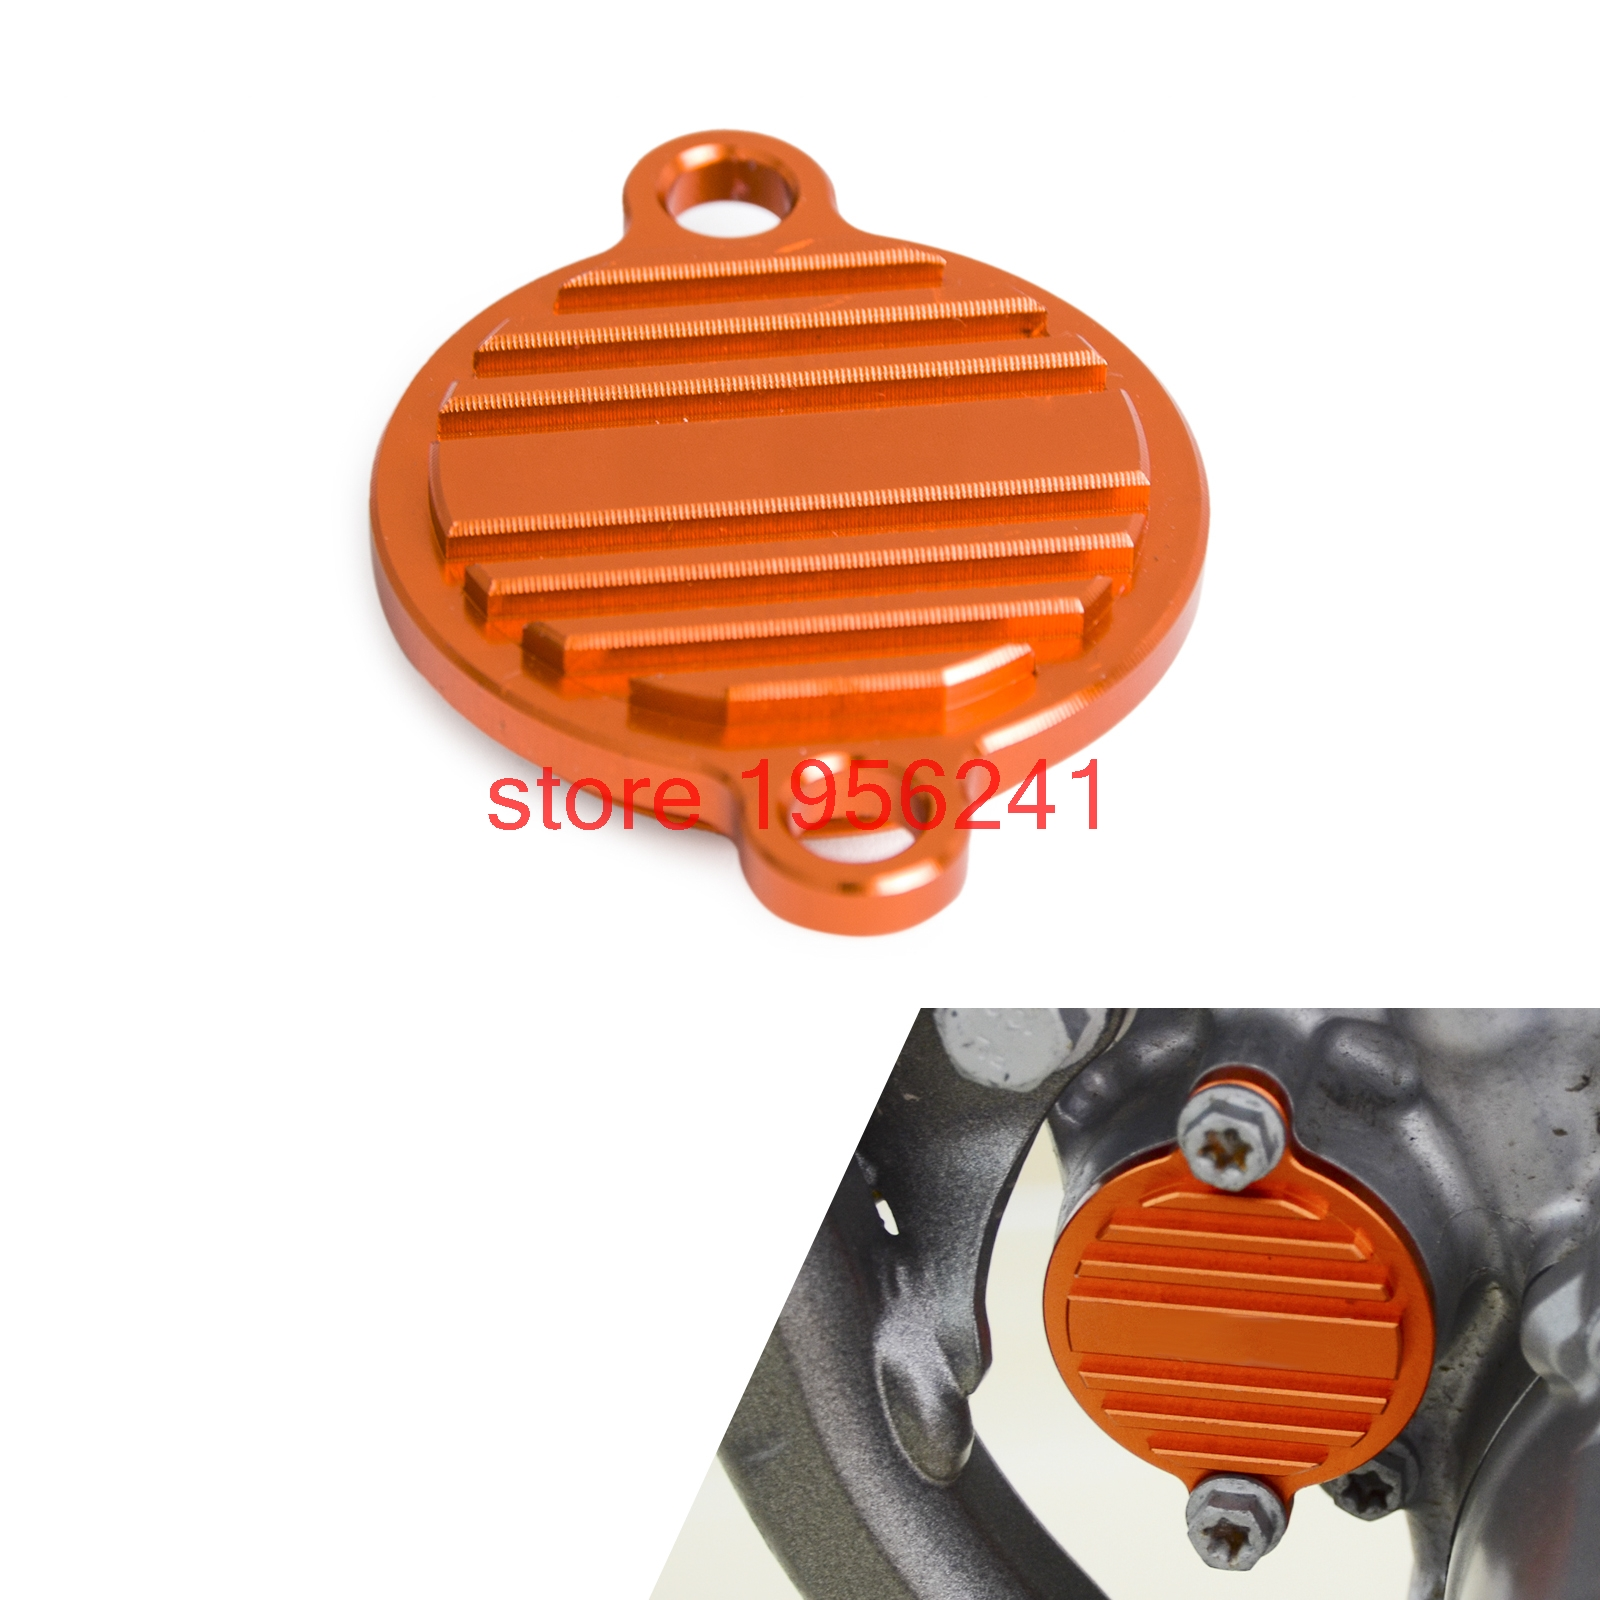 CNC Billet Oil Filter Cover For KTM 250 350 400 450 505 530 SXF SX-F EXC-F EXCF SIX DAYS EXC SXS-F SMR Freeride cnc stunt clutch lever easy pull cable system for ktm exc excf xc xcf xcw xcfw mx egs sx sxf sxs smr 50 65 85 125 150 200 250